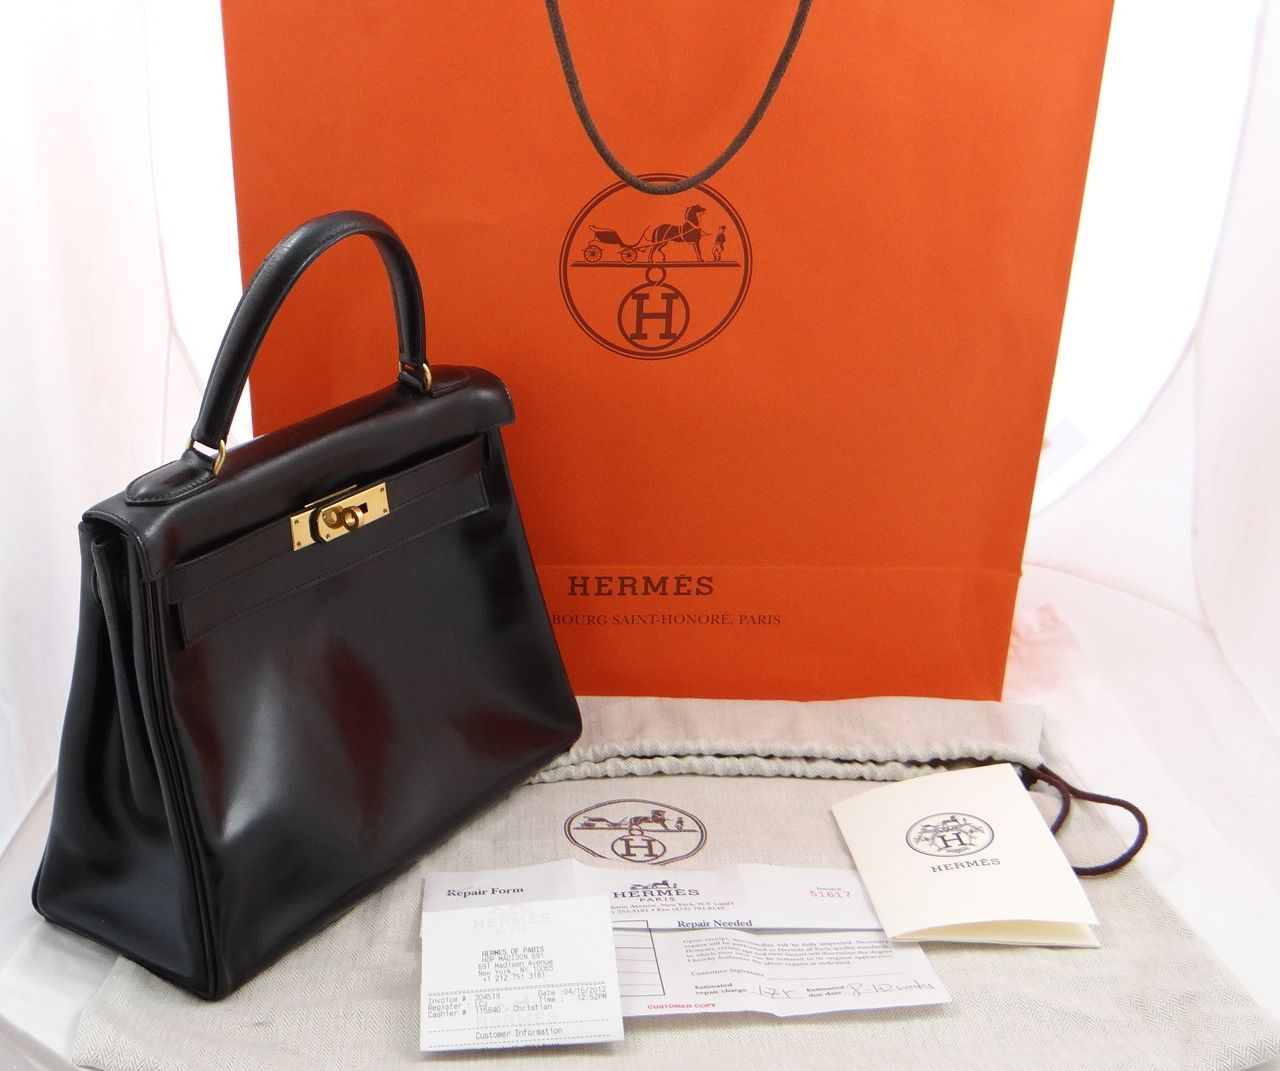 This is a legitimate Hermes Kelly handbag. It includes a duster and an original store bag.